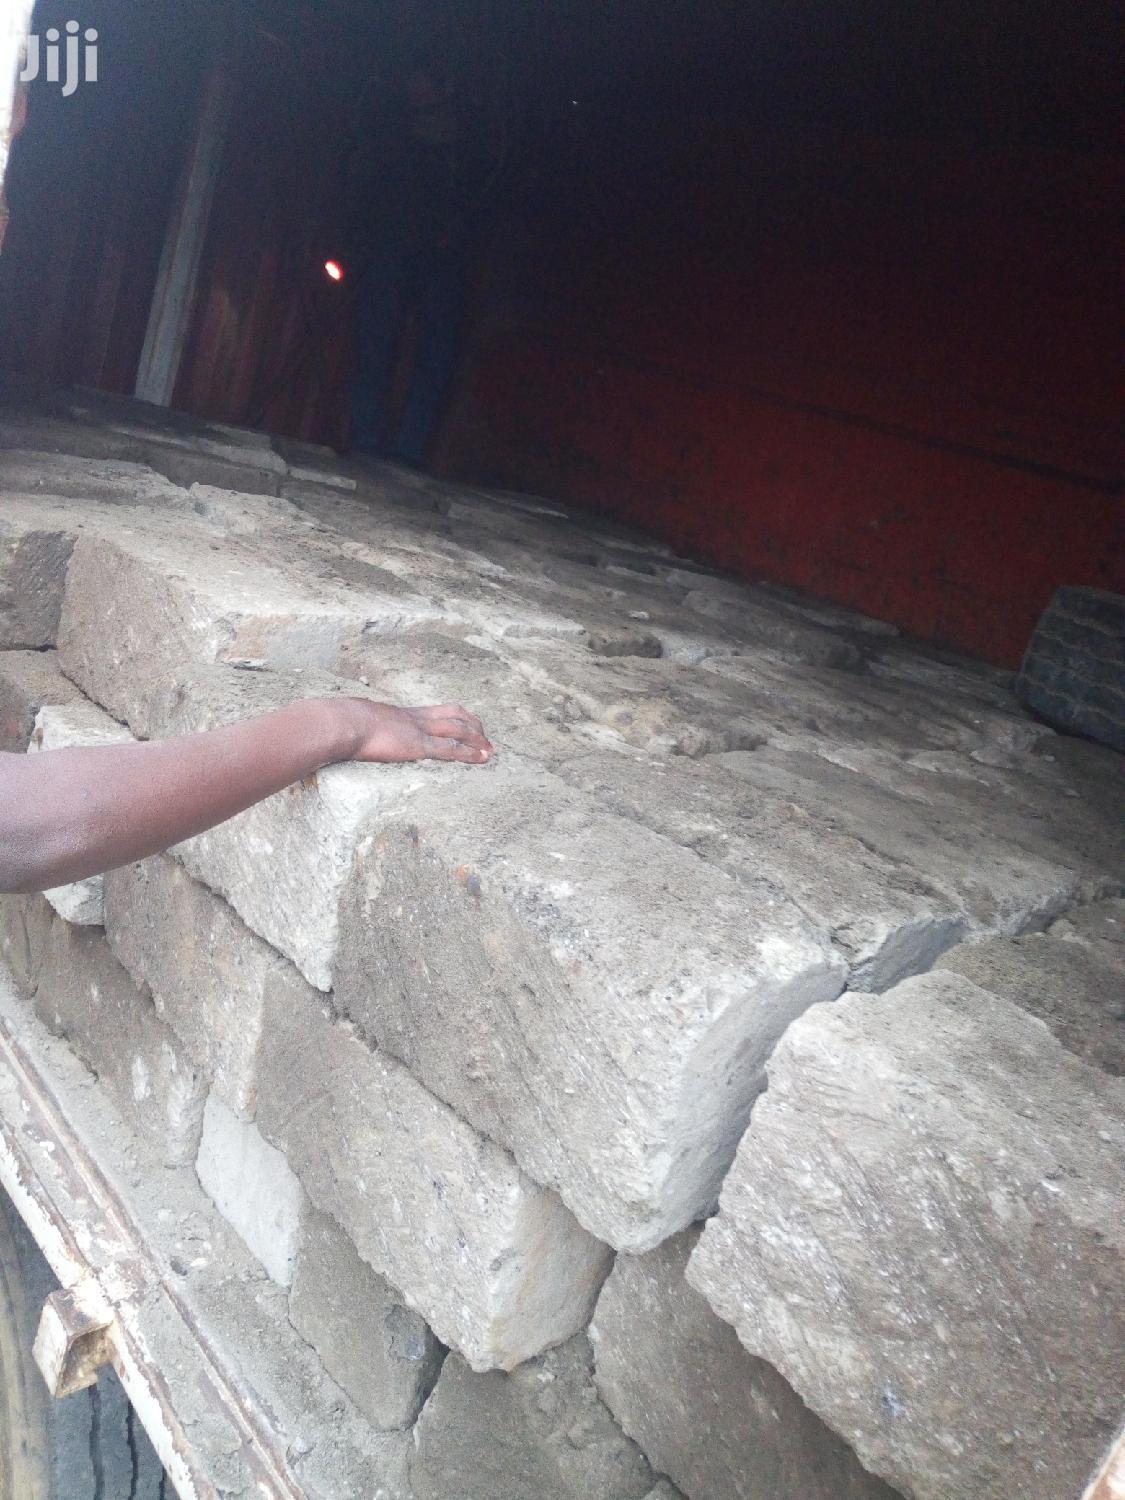 Quality Machine Cut Stones | Building Materials for sale in Ruai, Nairobi, Kenya